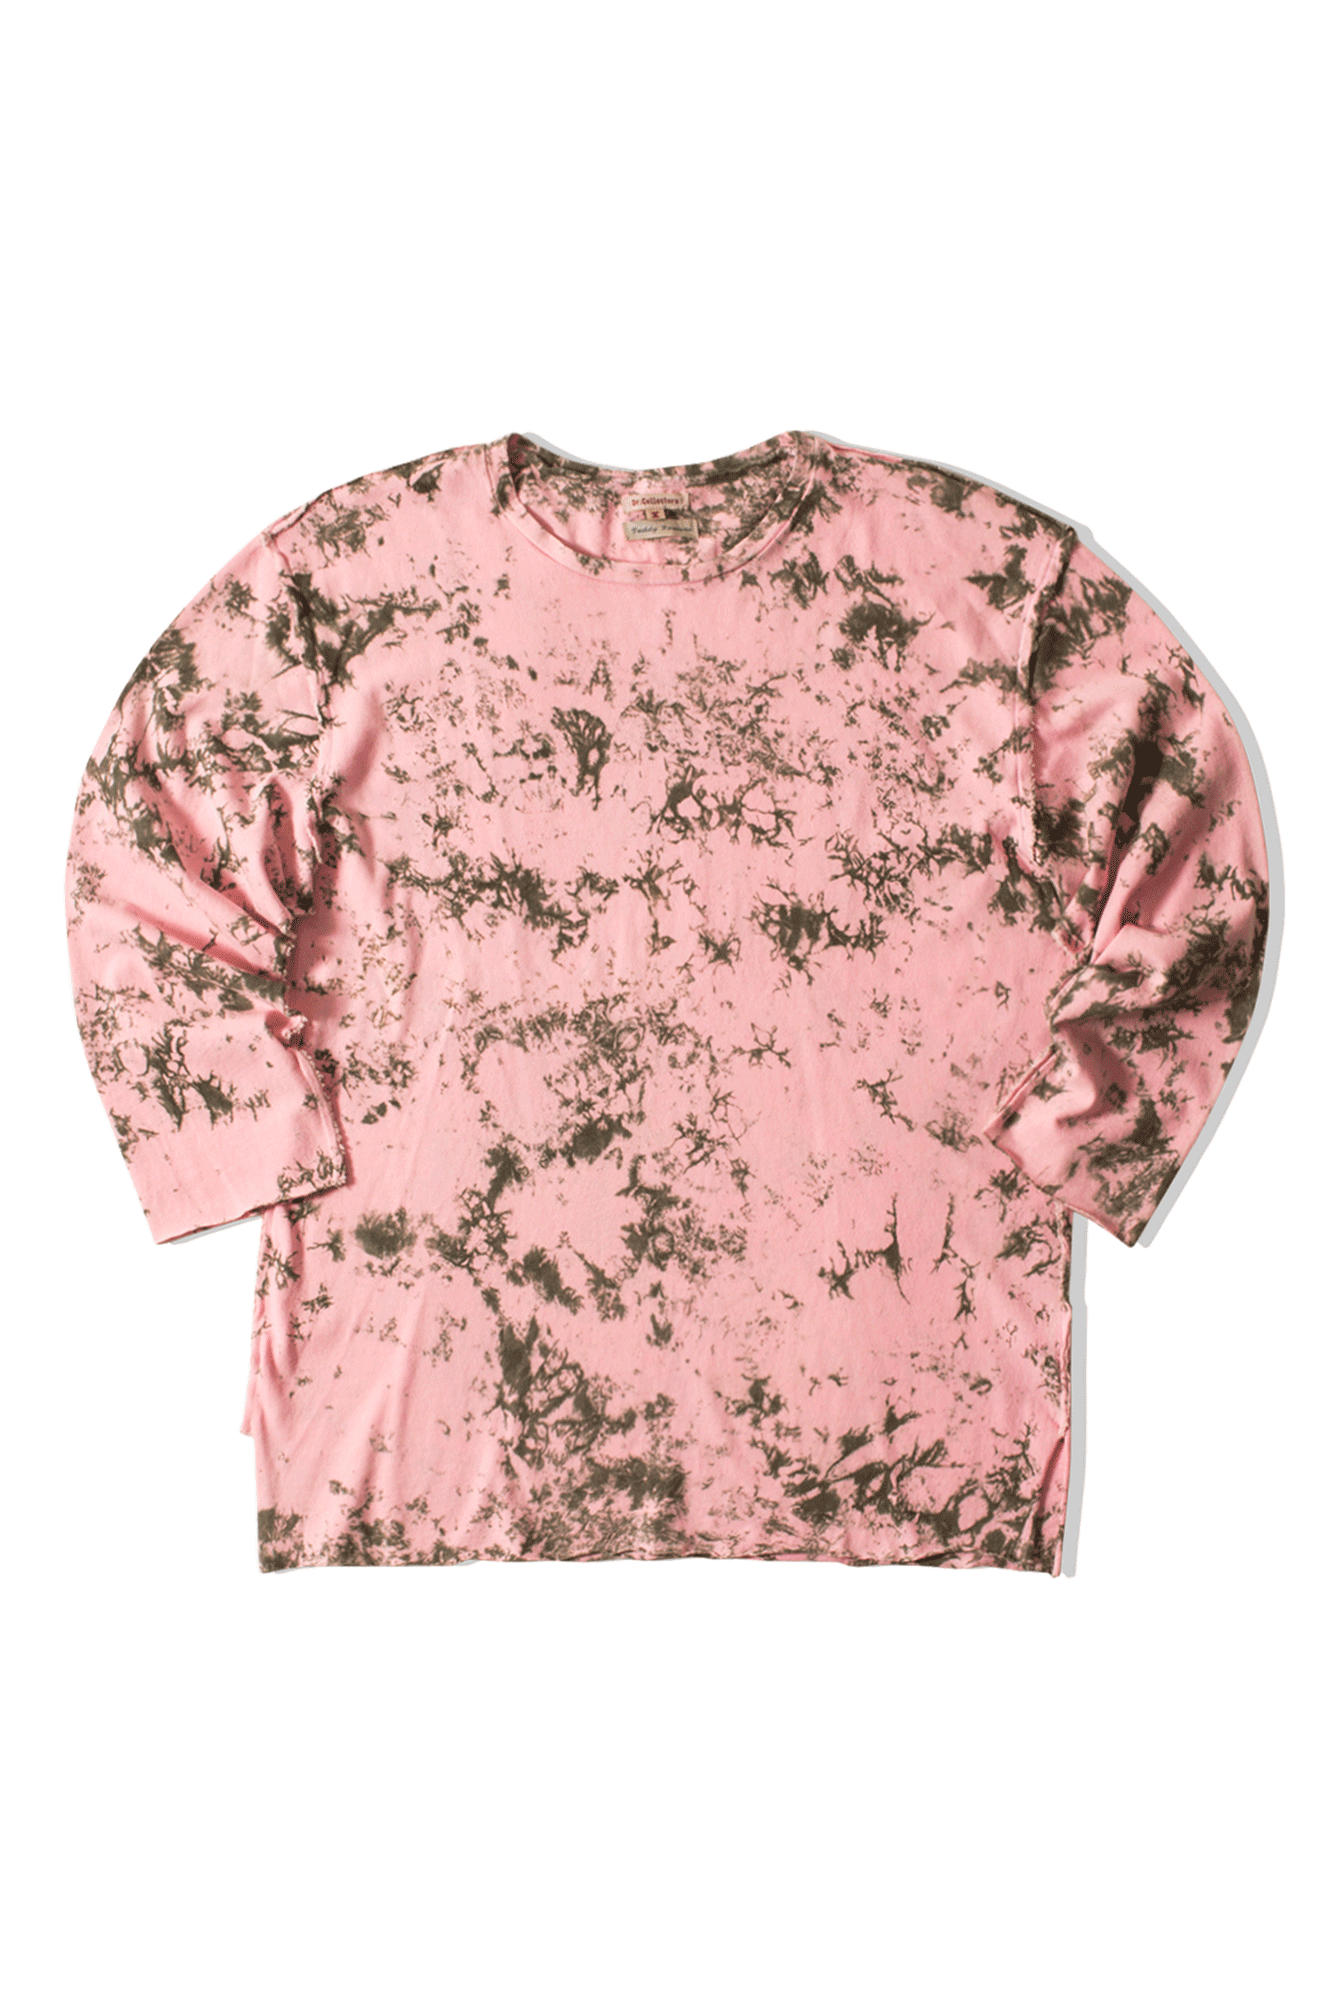 Dr. Collectors Long sleeve T-Shirts Frisco Longsleeve Tie-Die Pink FRISCOT#TIEDIE#PINK#XS - One Block Down